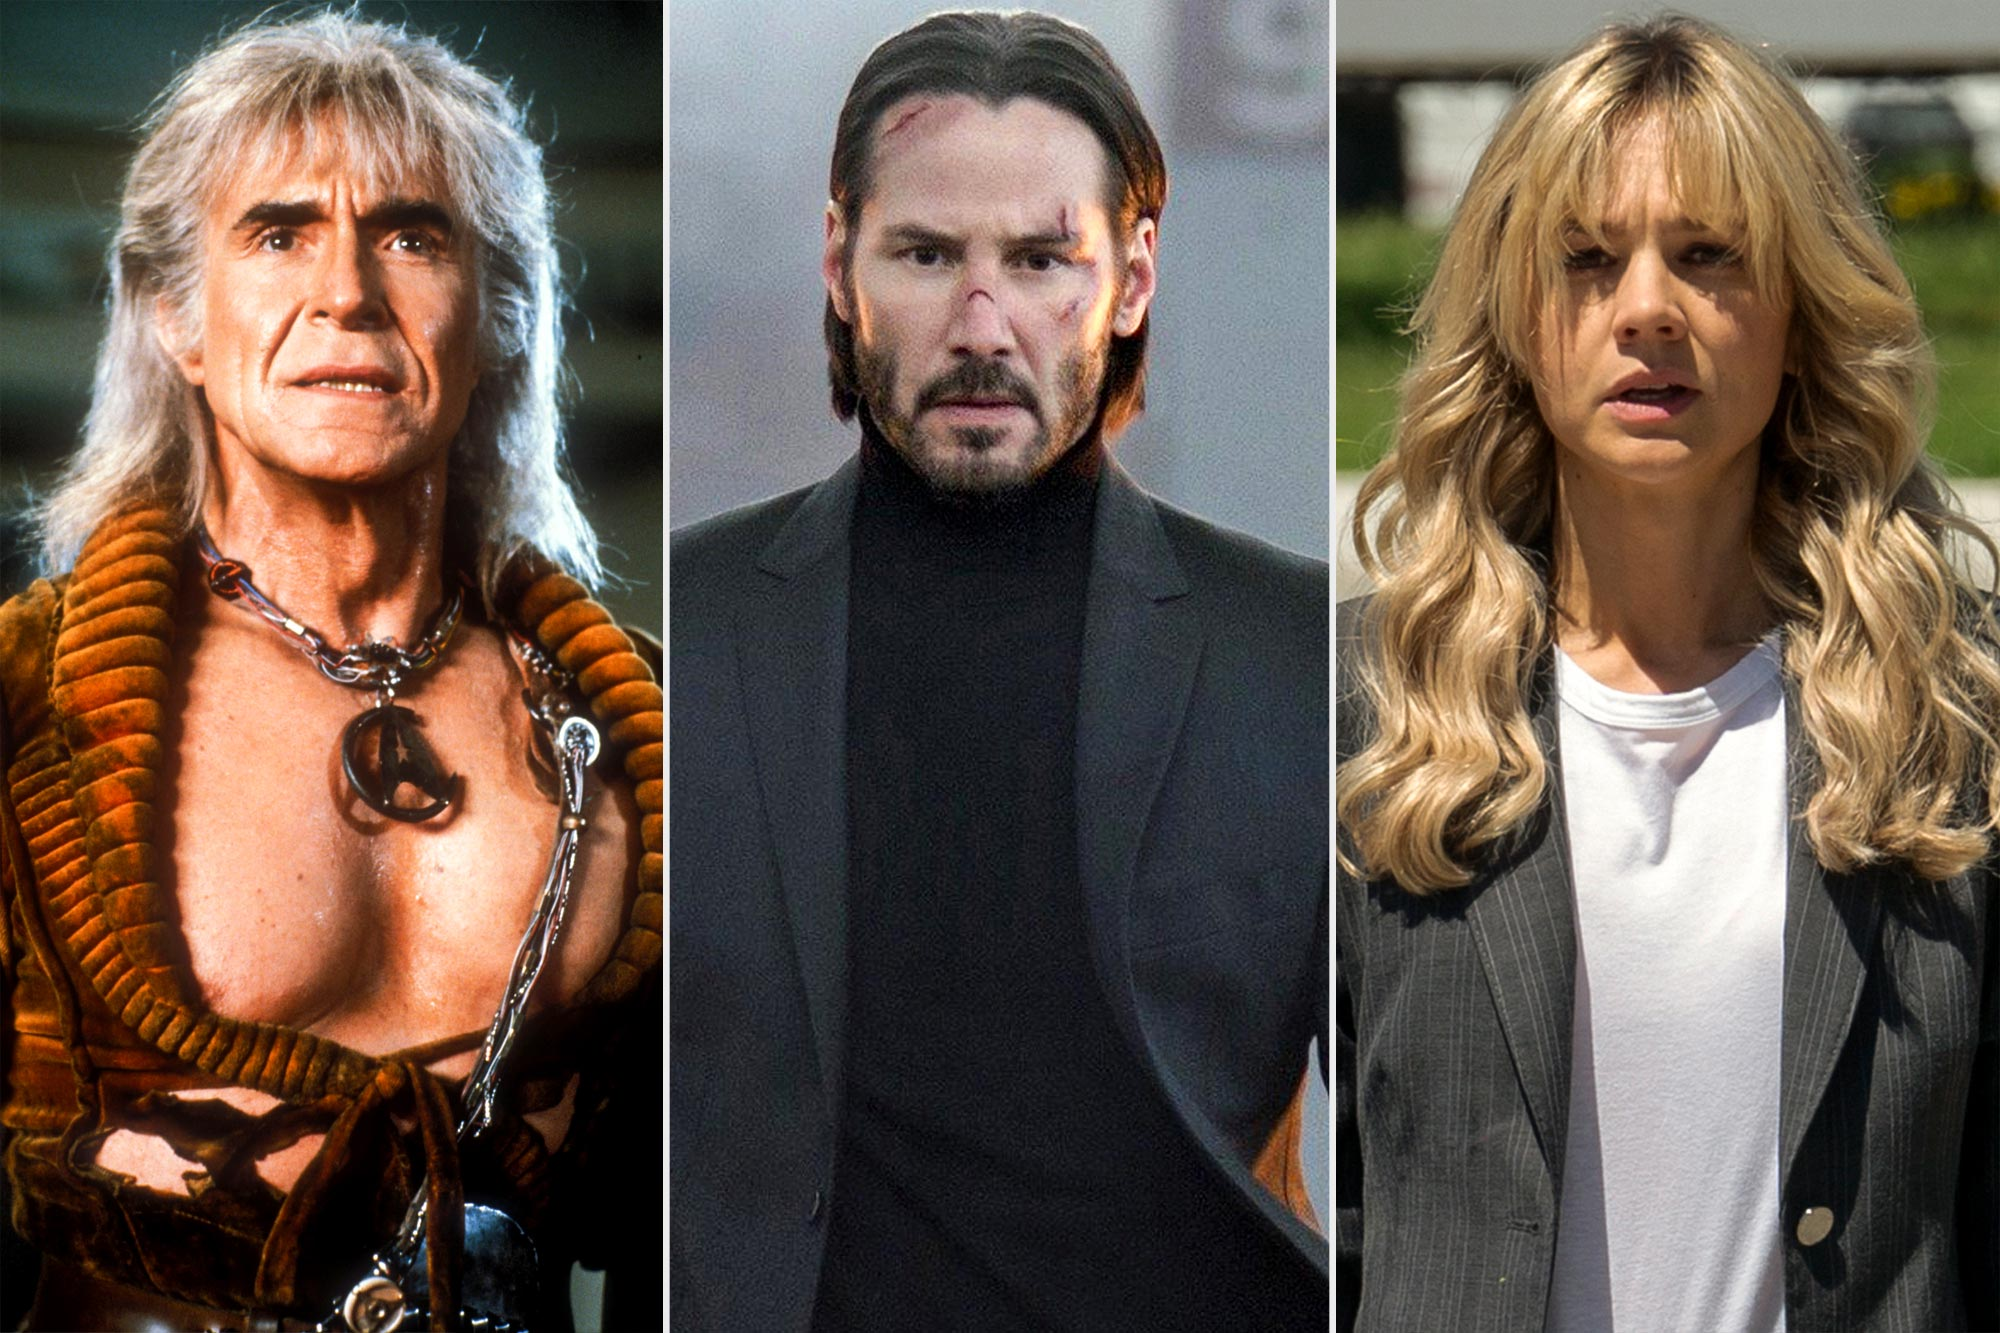 Revenge Movies Star Trek 2: The Wrath of Khan; John Wick; Promising Young Woman